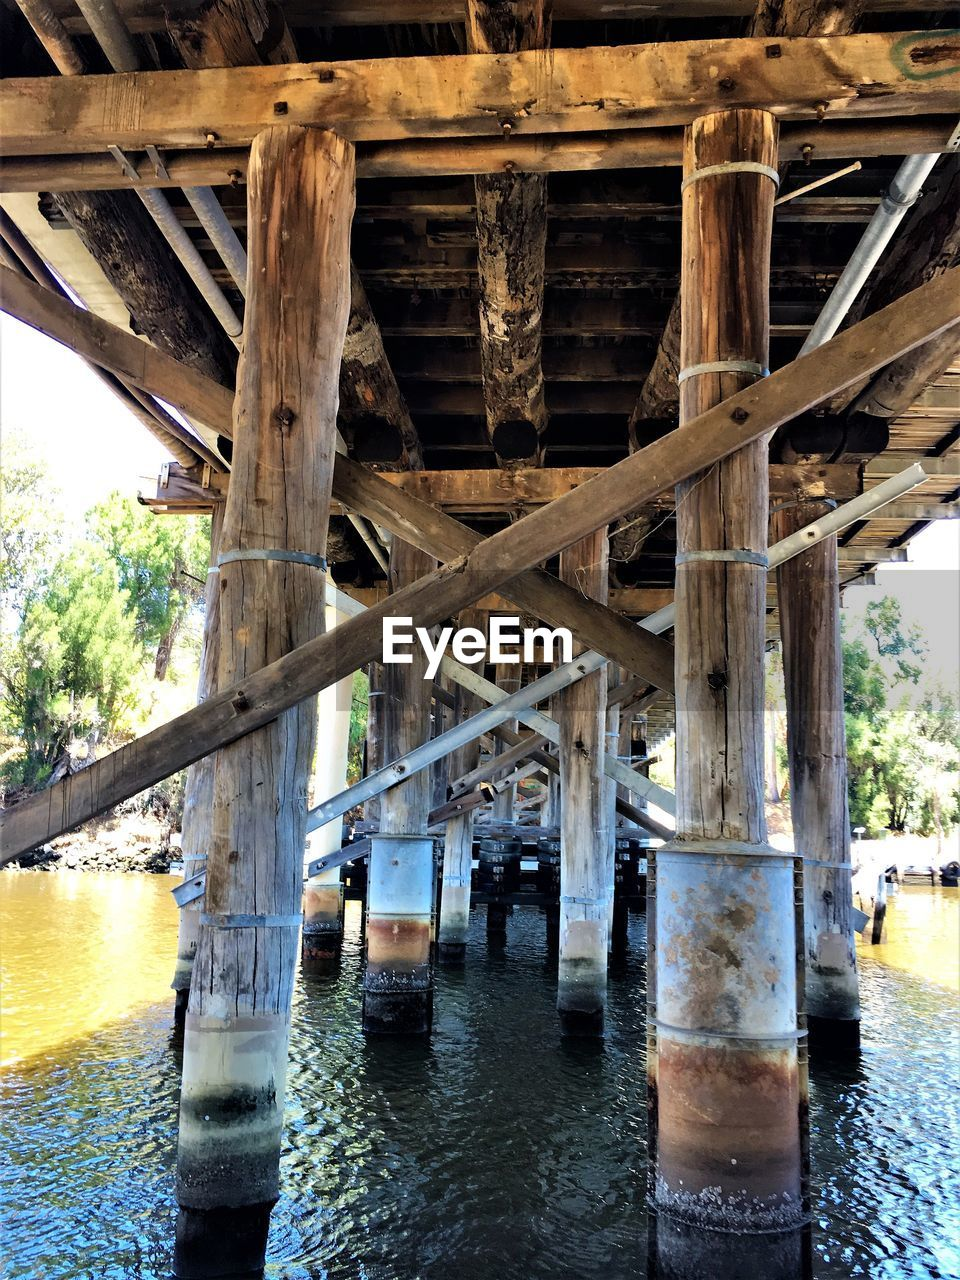 water, bridge - man made structure, connection, below, underneath, architecture, day, river, built structure, outdoors, architectural column, waterfront, nature, no people, under